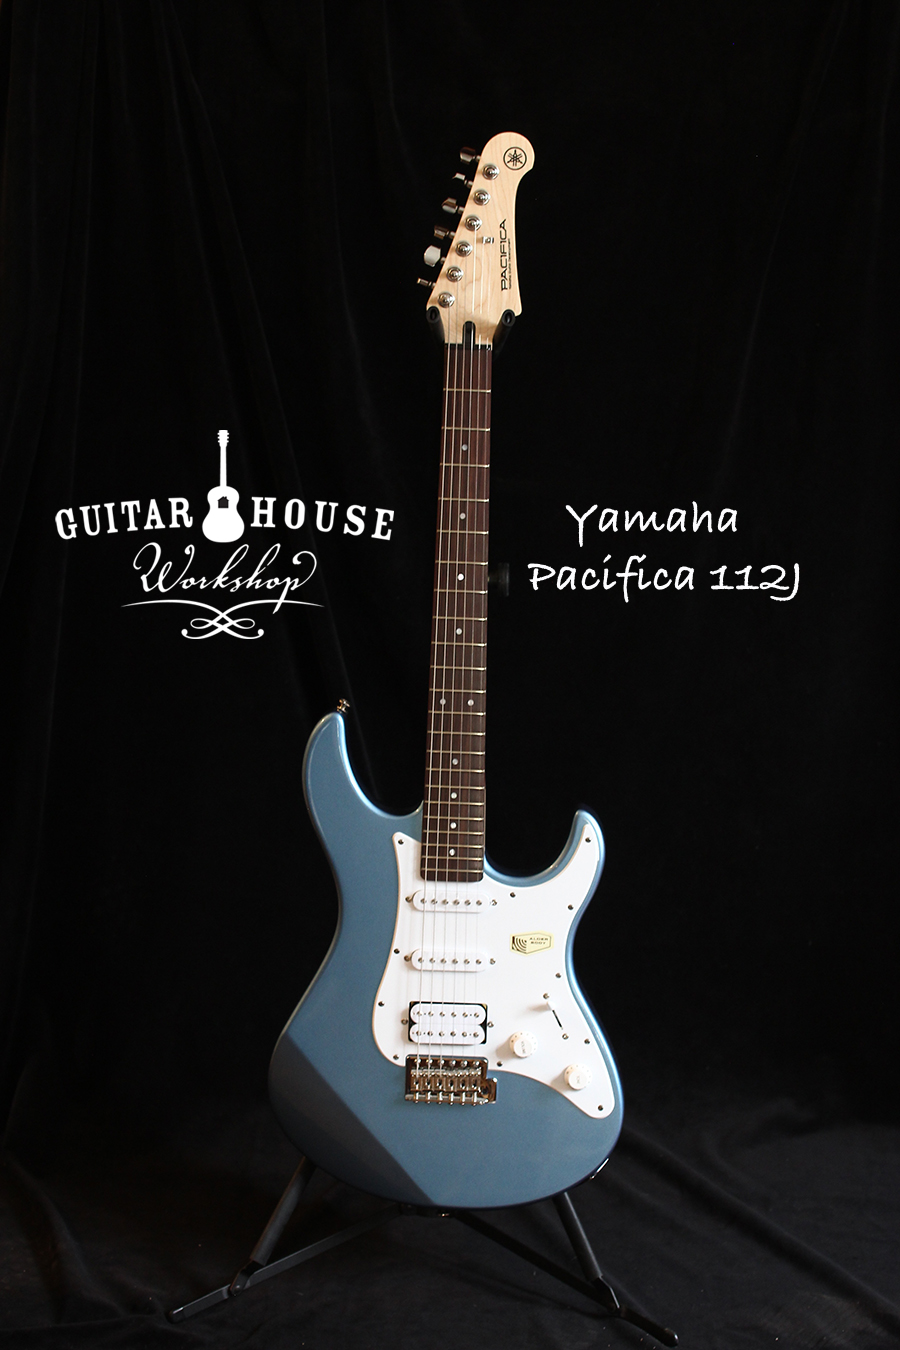 Can be ordered  Yamaha Pacifica 112J  $225